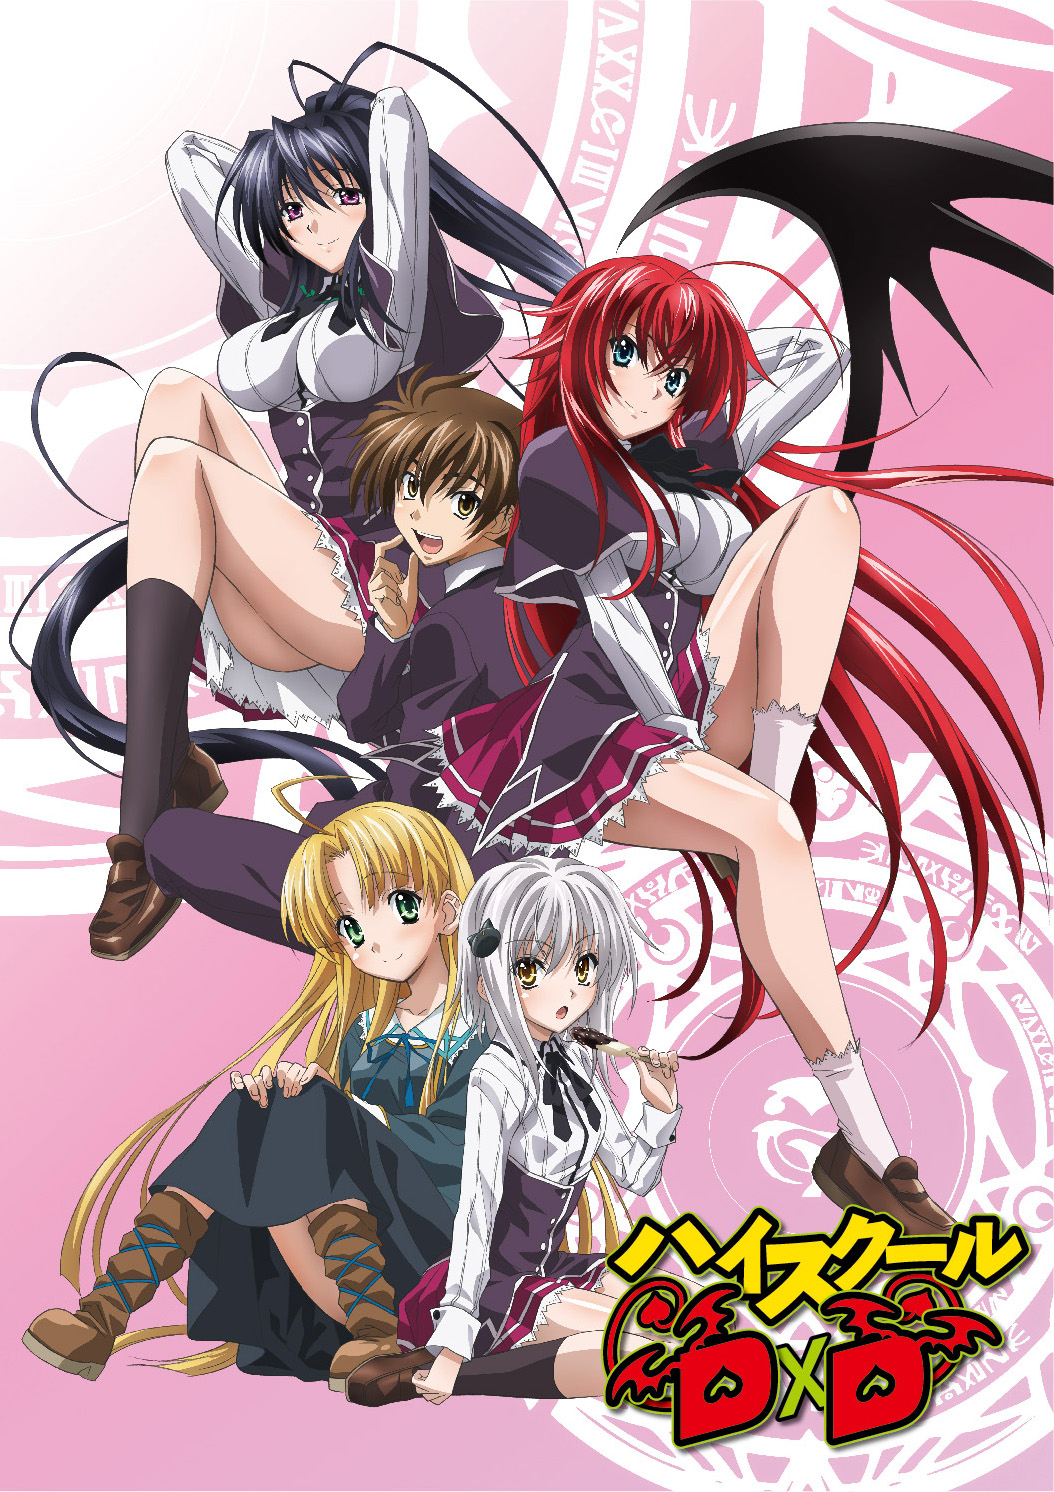 HentaiStream.com High School DxD Episode 7